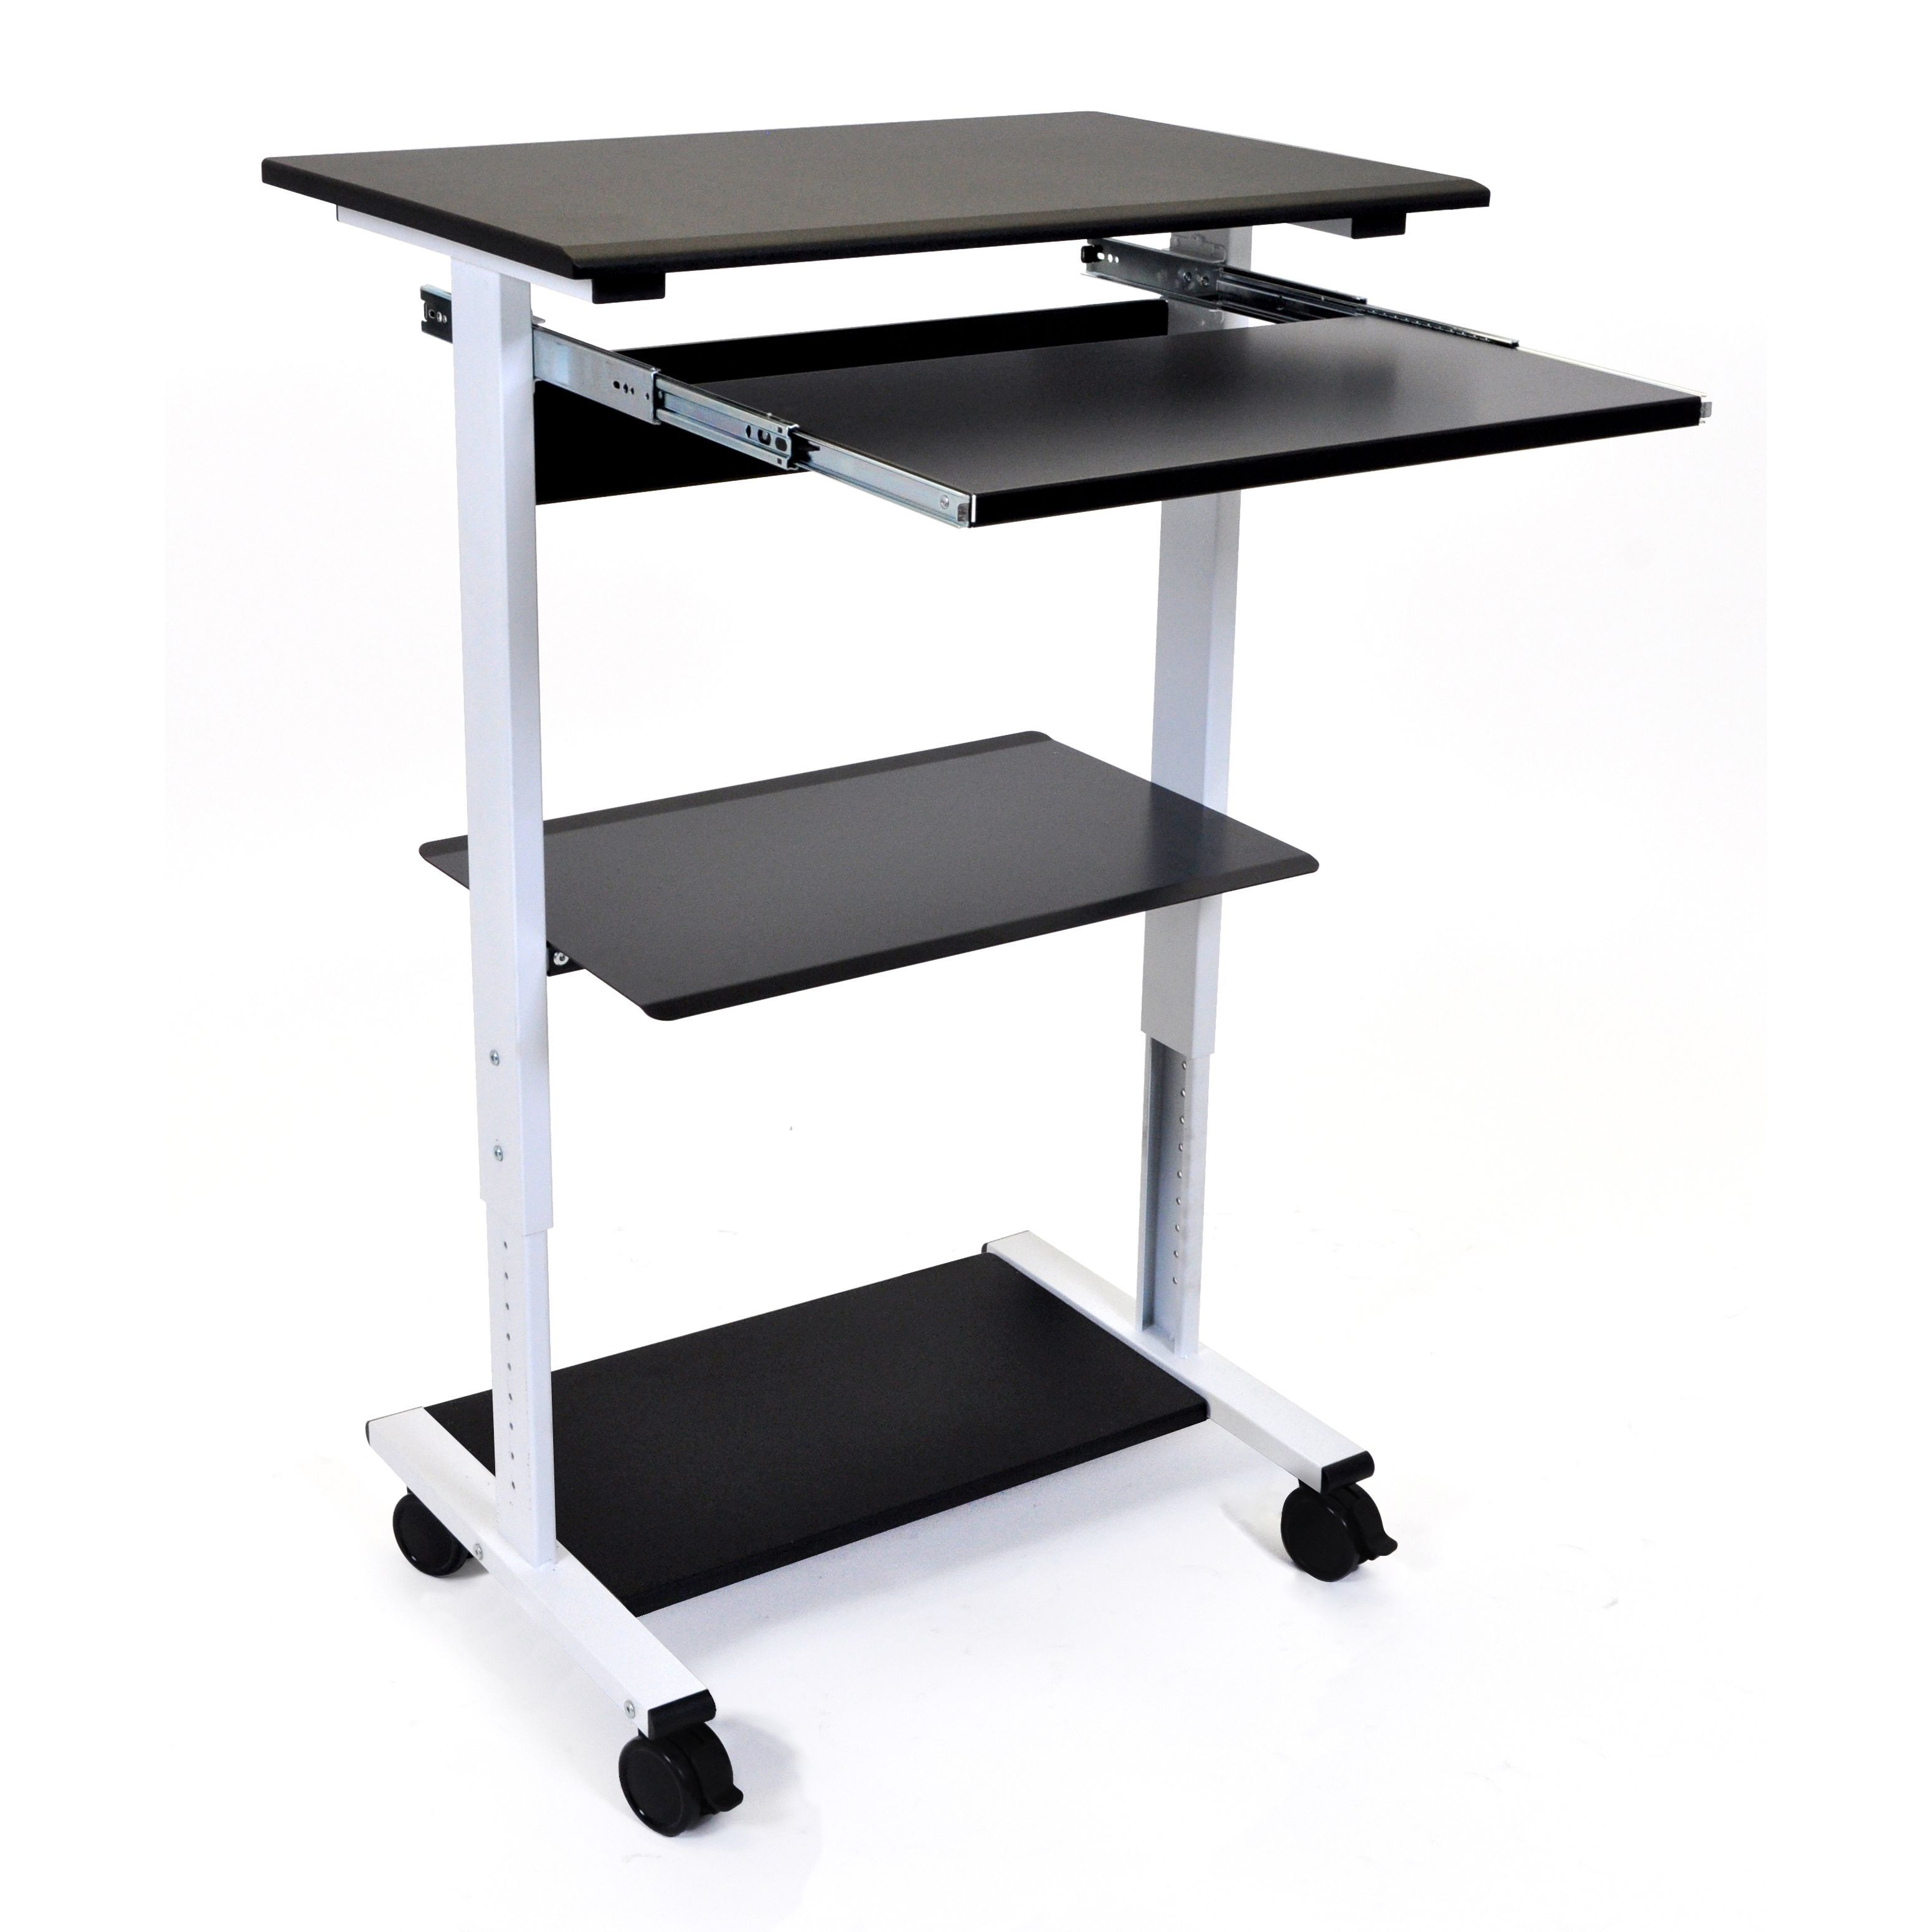 laptop table desk and up computer large standing workstation height convertible full size of movable best adjustable attachment sit affordable office stand